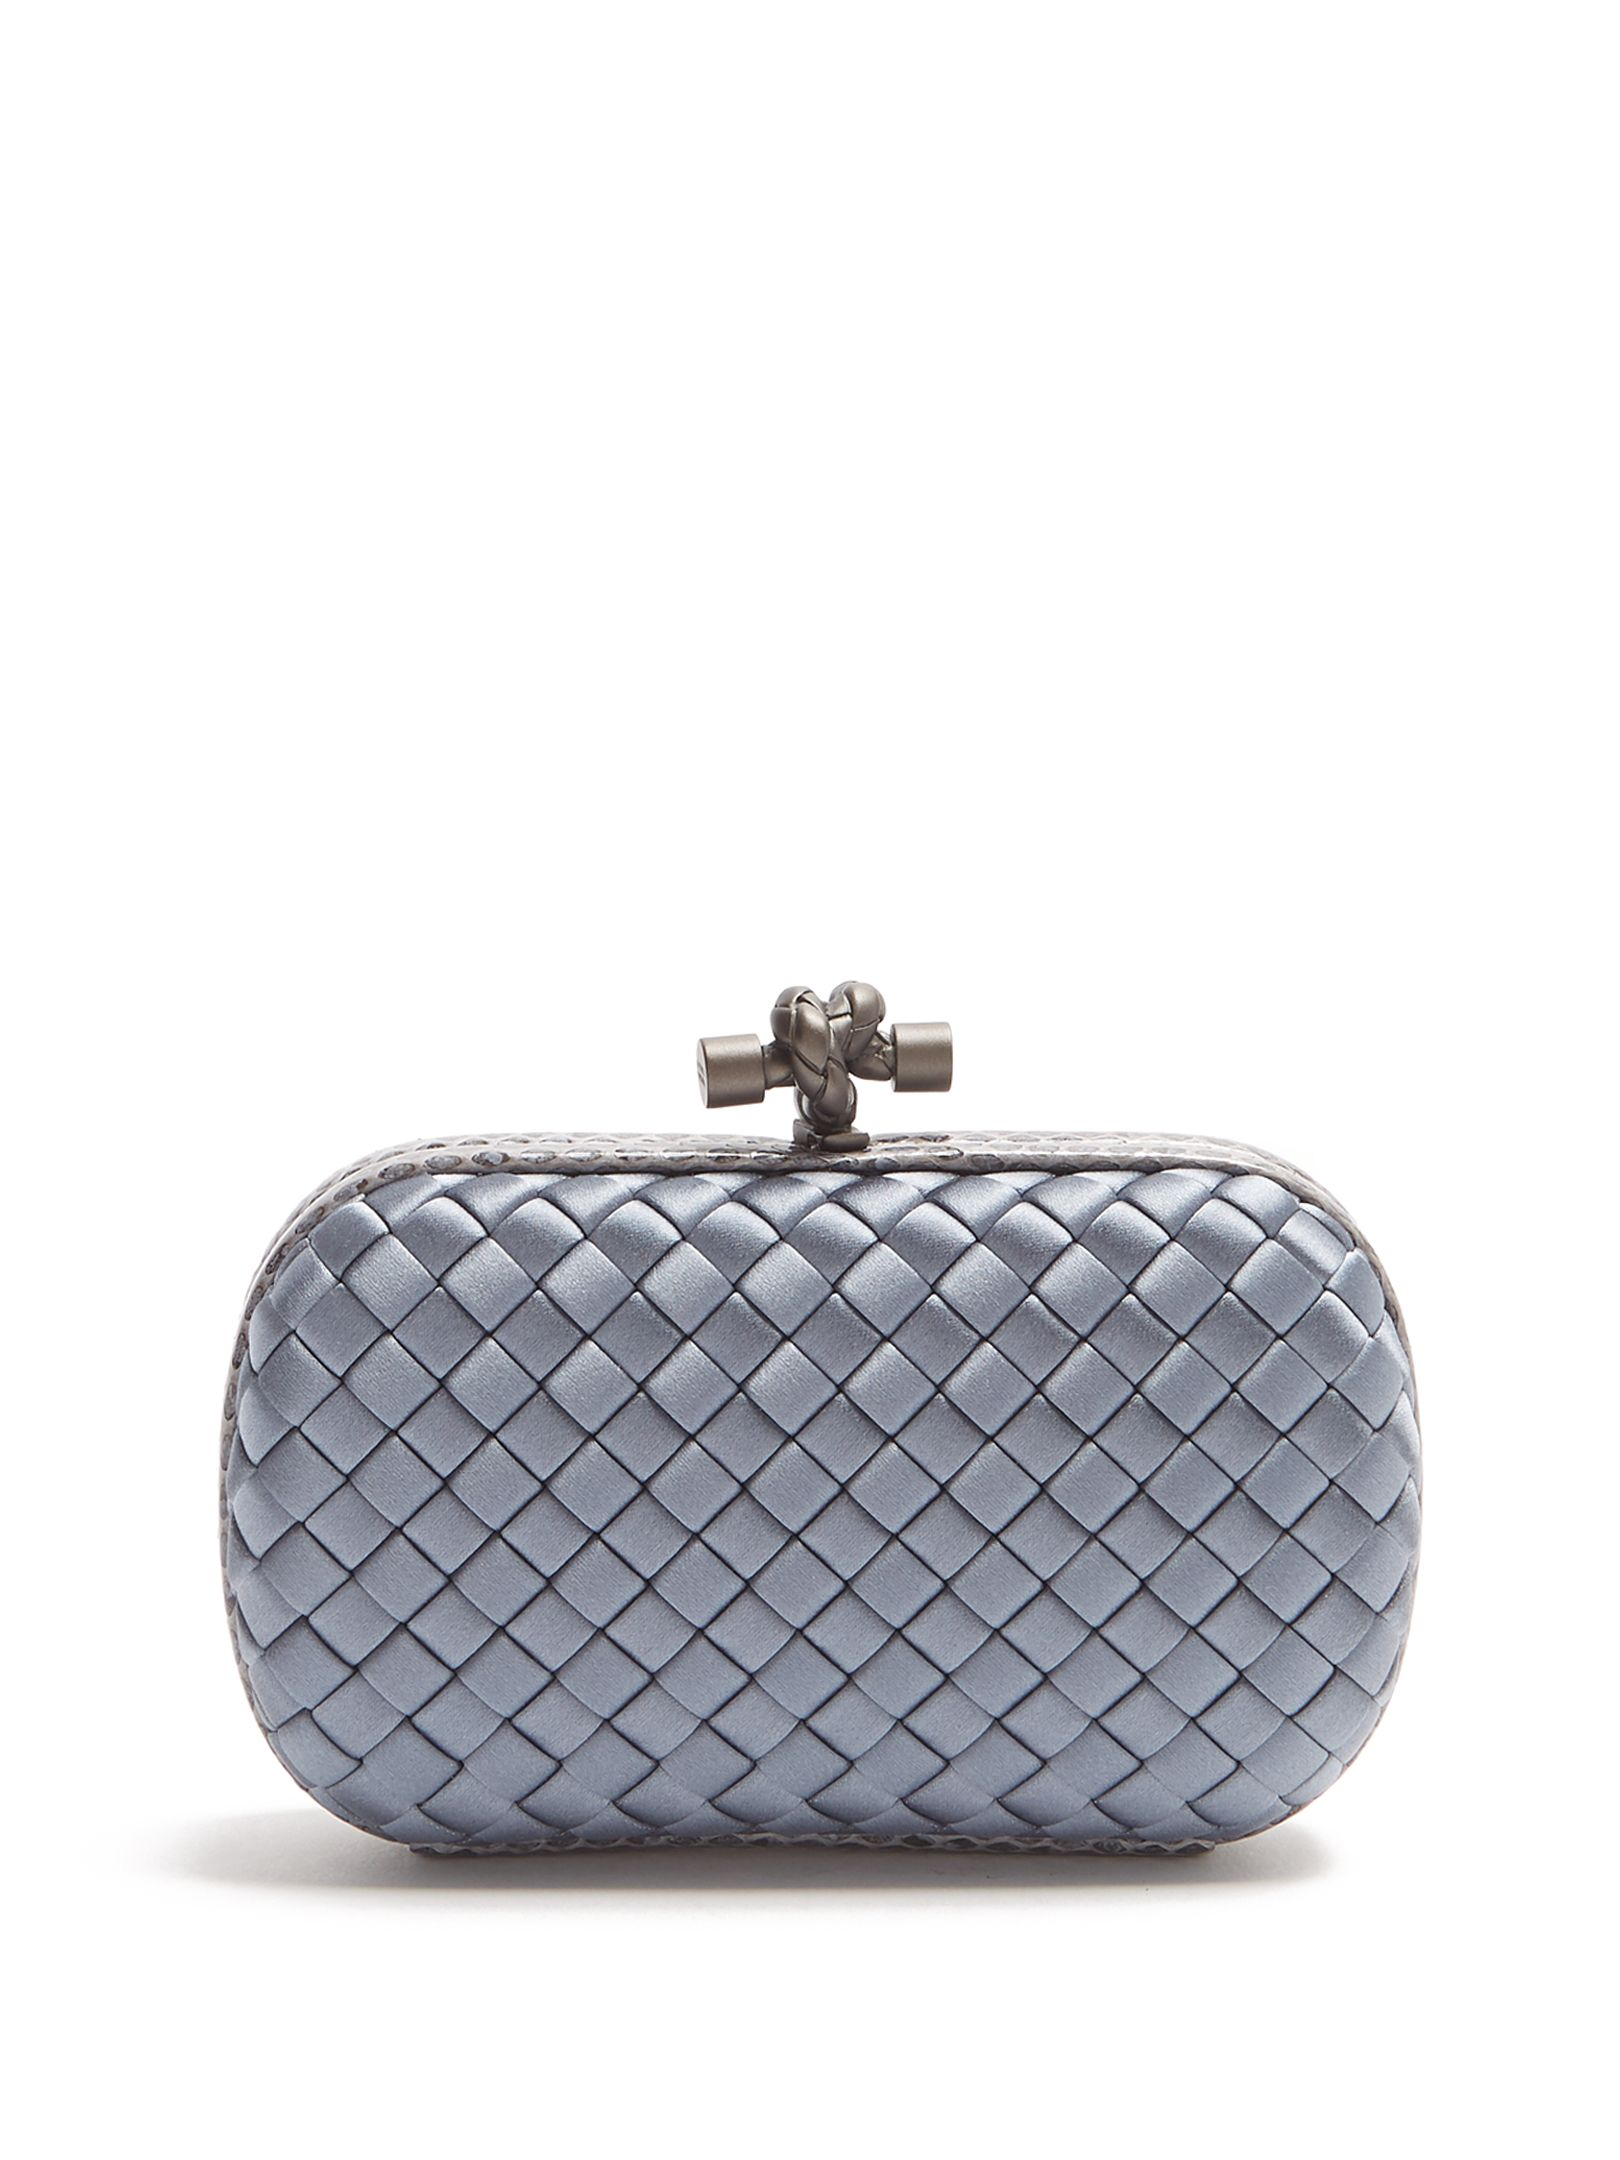 fe7a49165f Click here to buy Bottega Veneta Knot satin and water-snake clutch at  MATCHESFASHION.COM